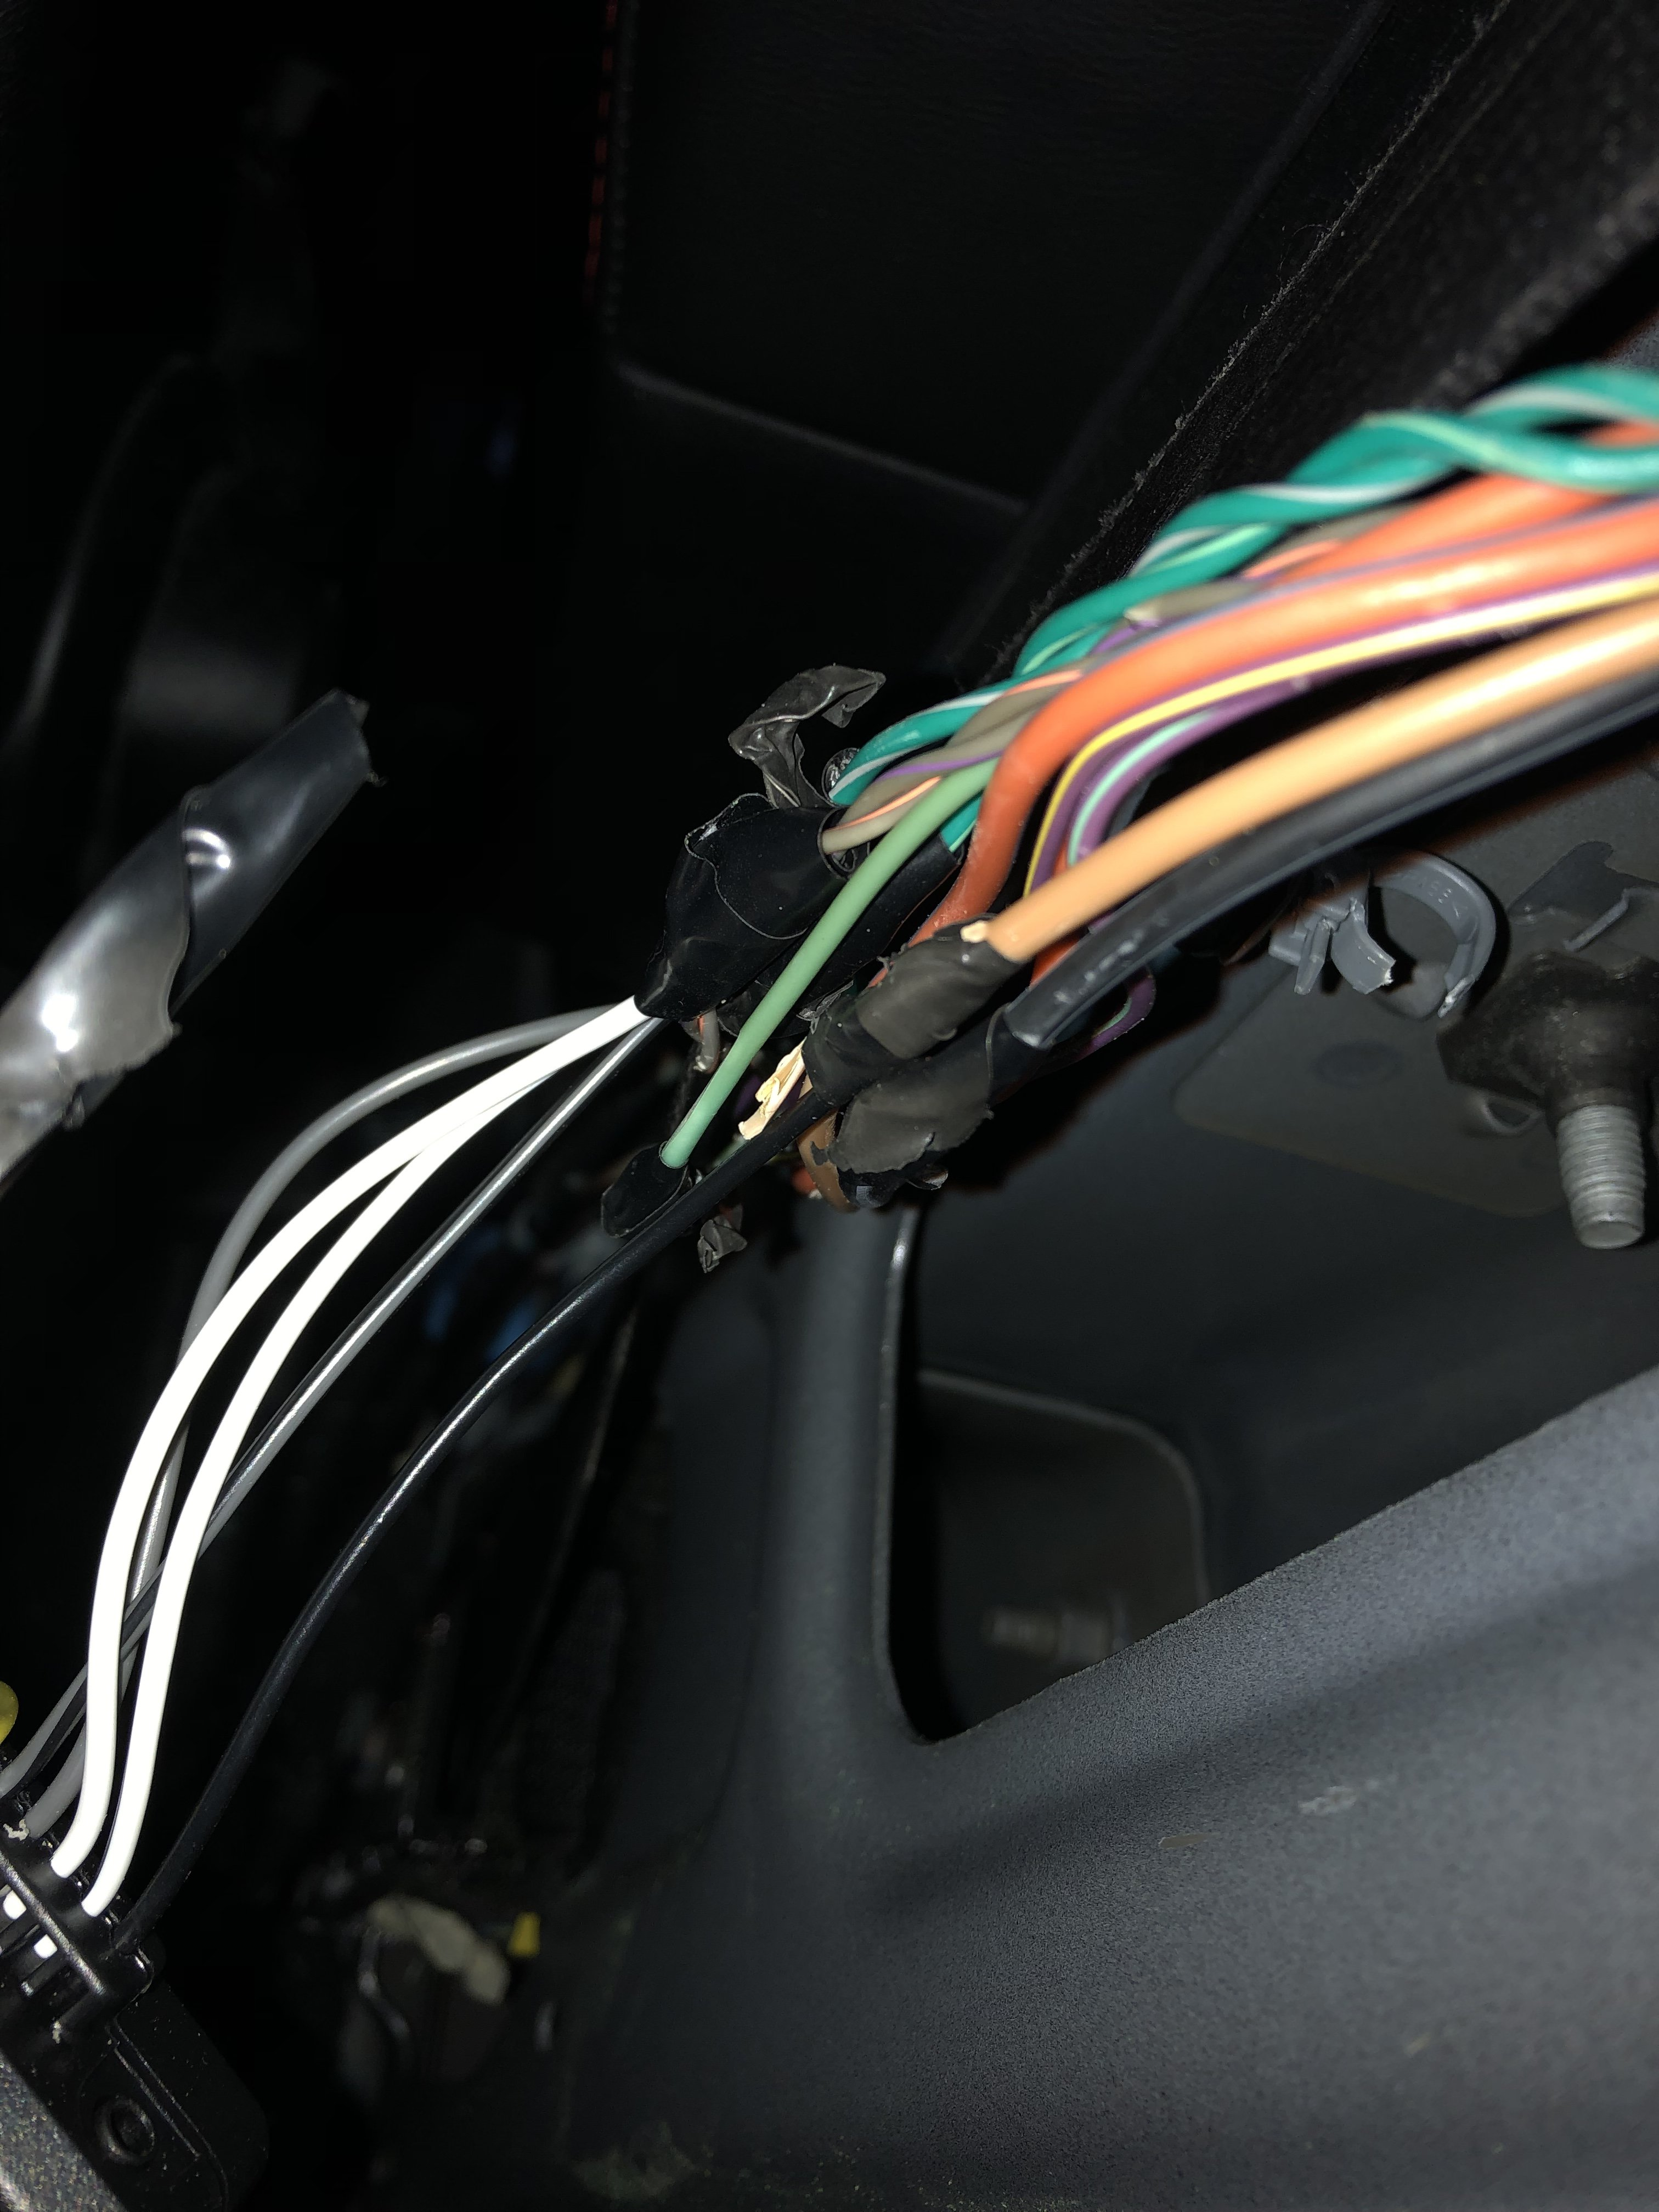 [WLLP_2054]   Tapping into side panel speaker wire - Audio, Infotainment Navigation, MyGig,  UConnect, etc. - Dodge Journey Forum   Dodge Journey Uconnect Wiring Diagram      Dodge Journey Forum